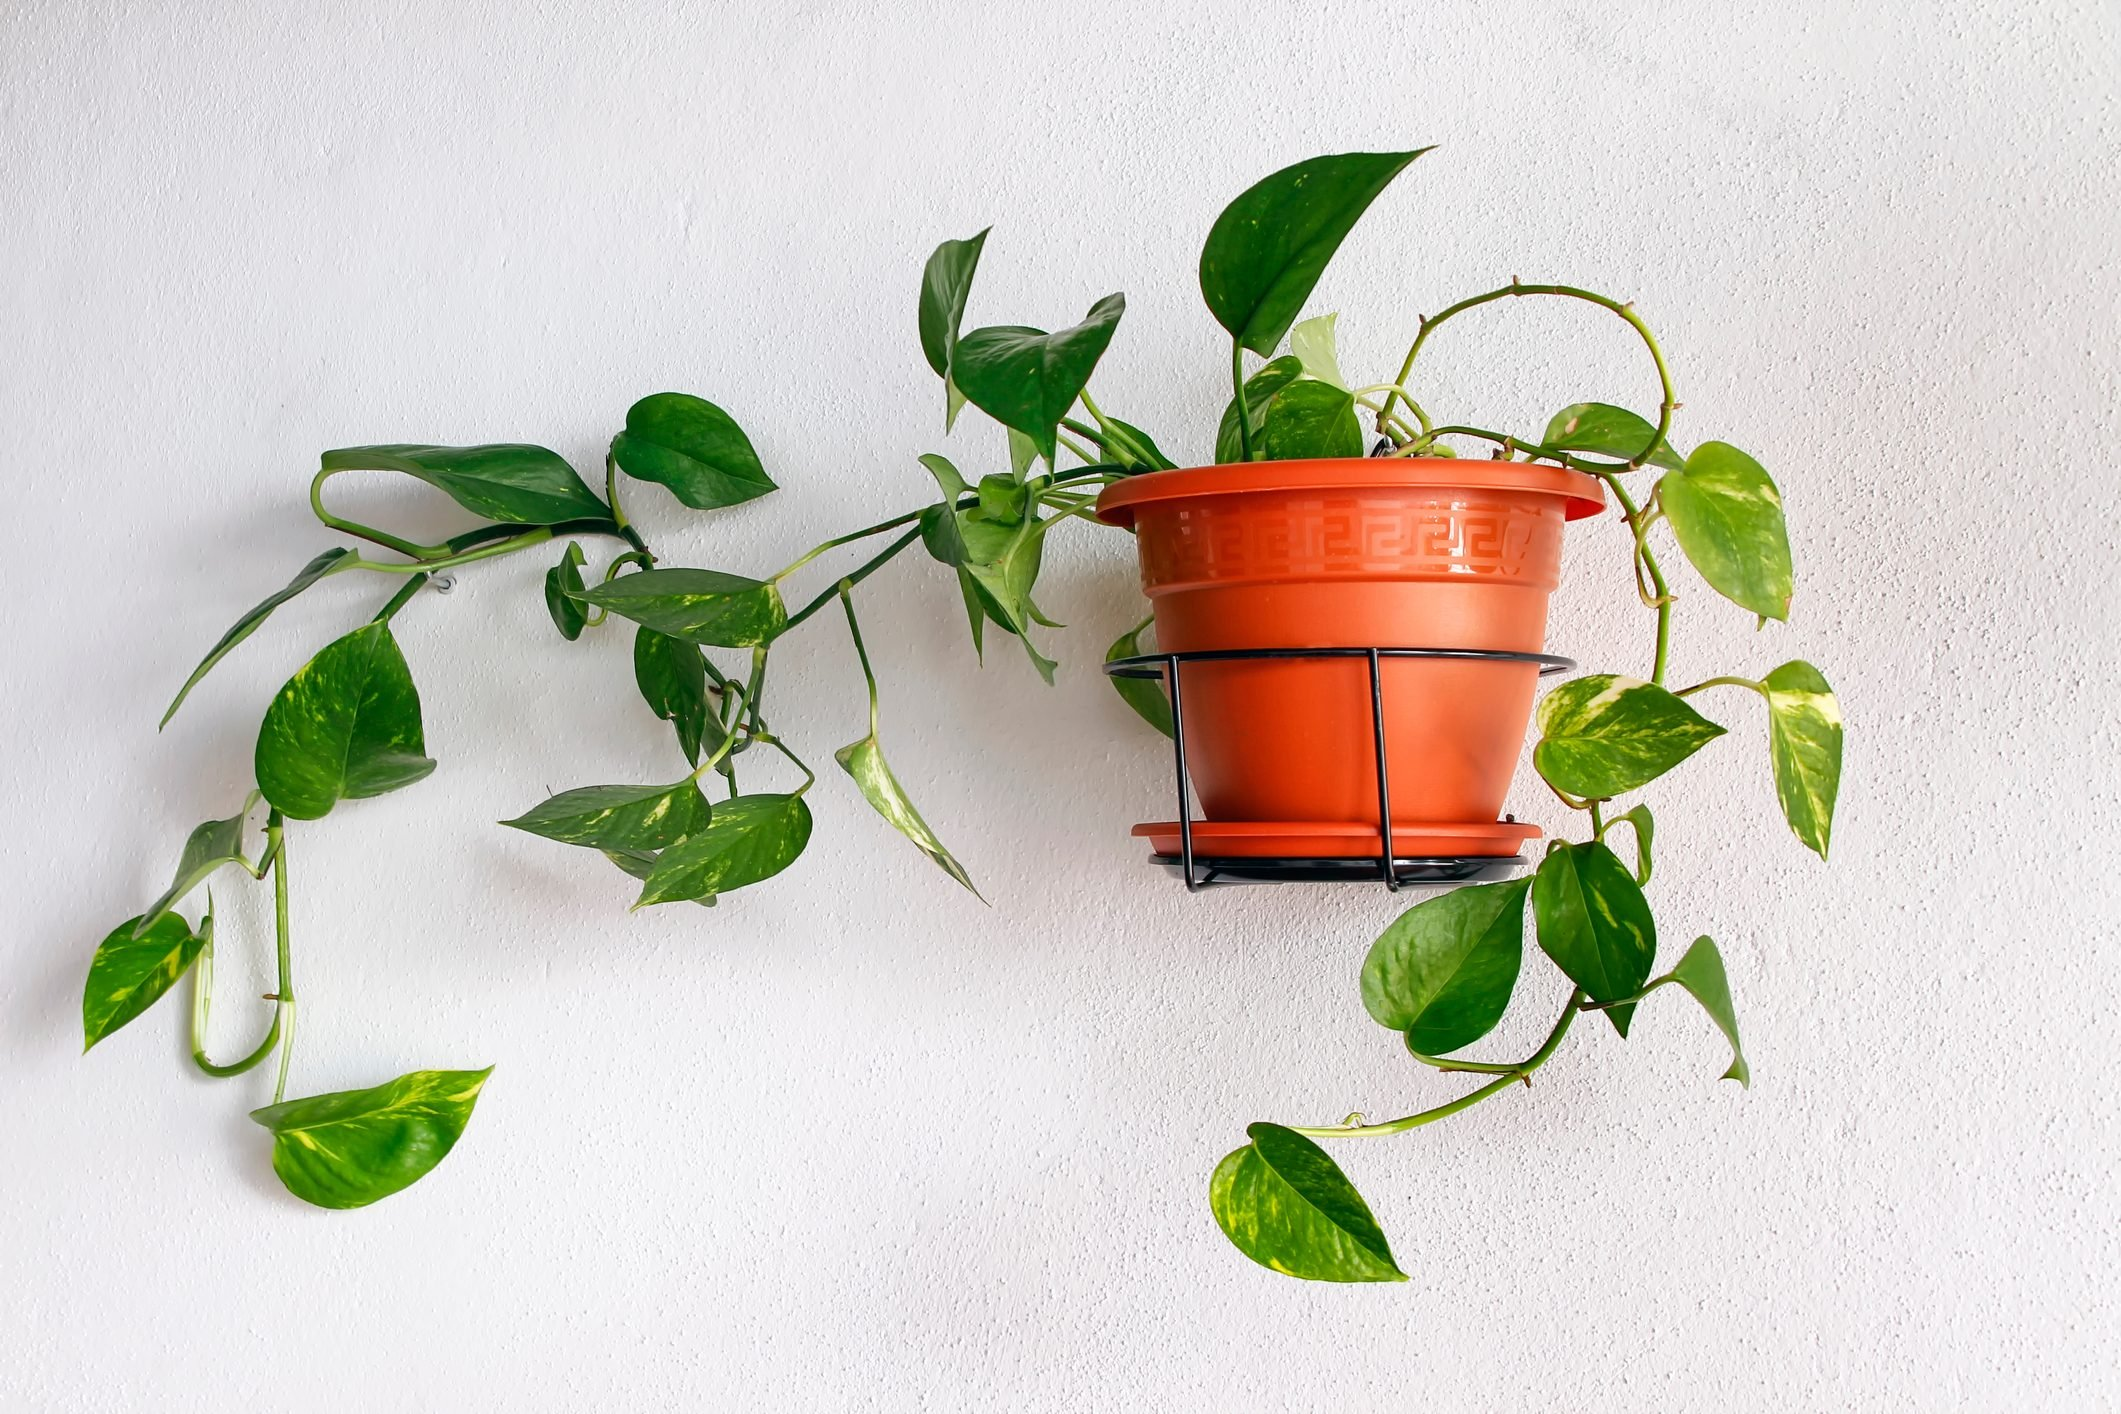 potted plant hanging on a white wall